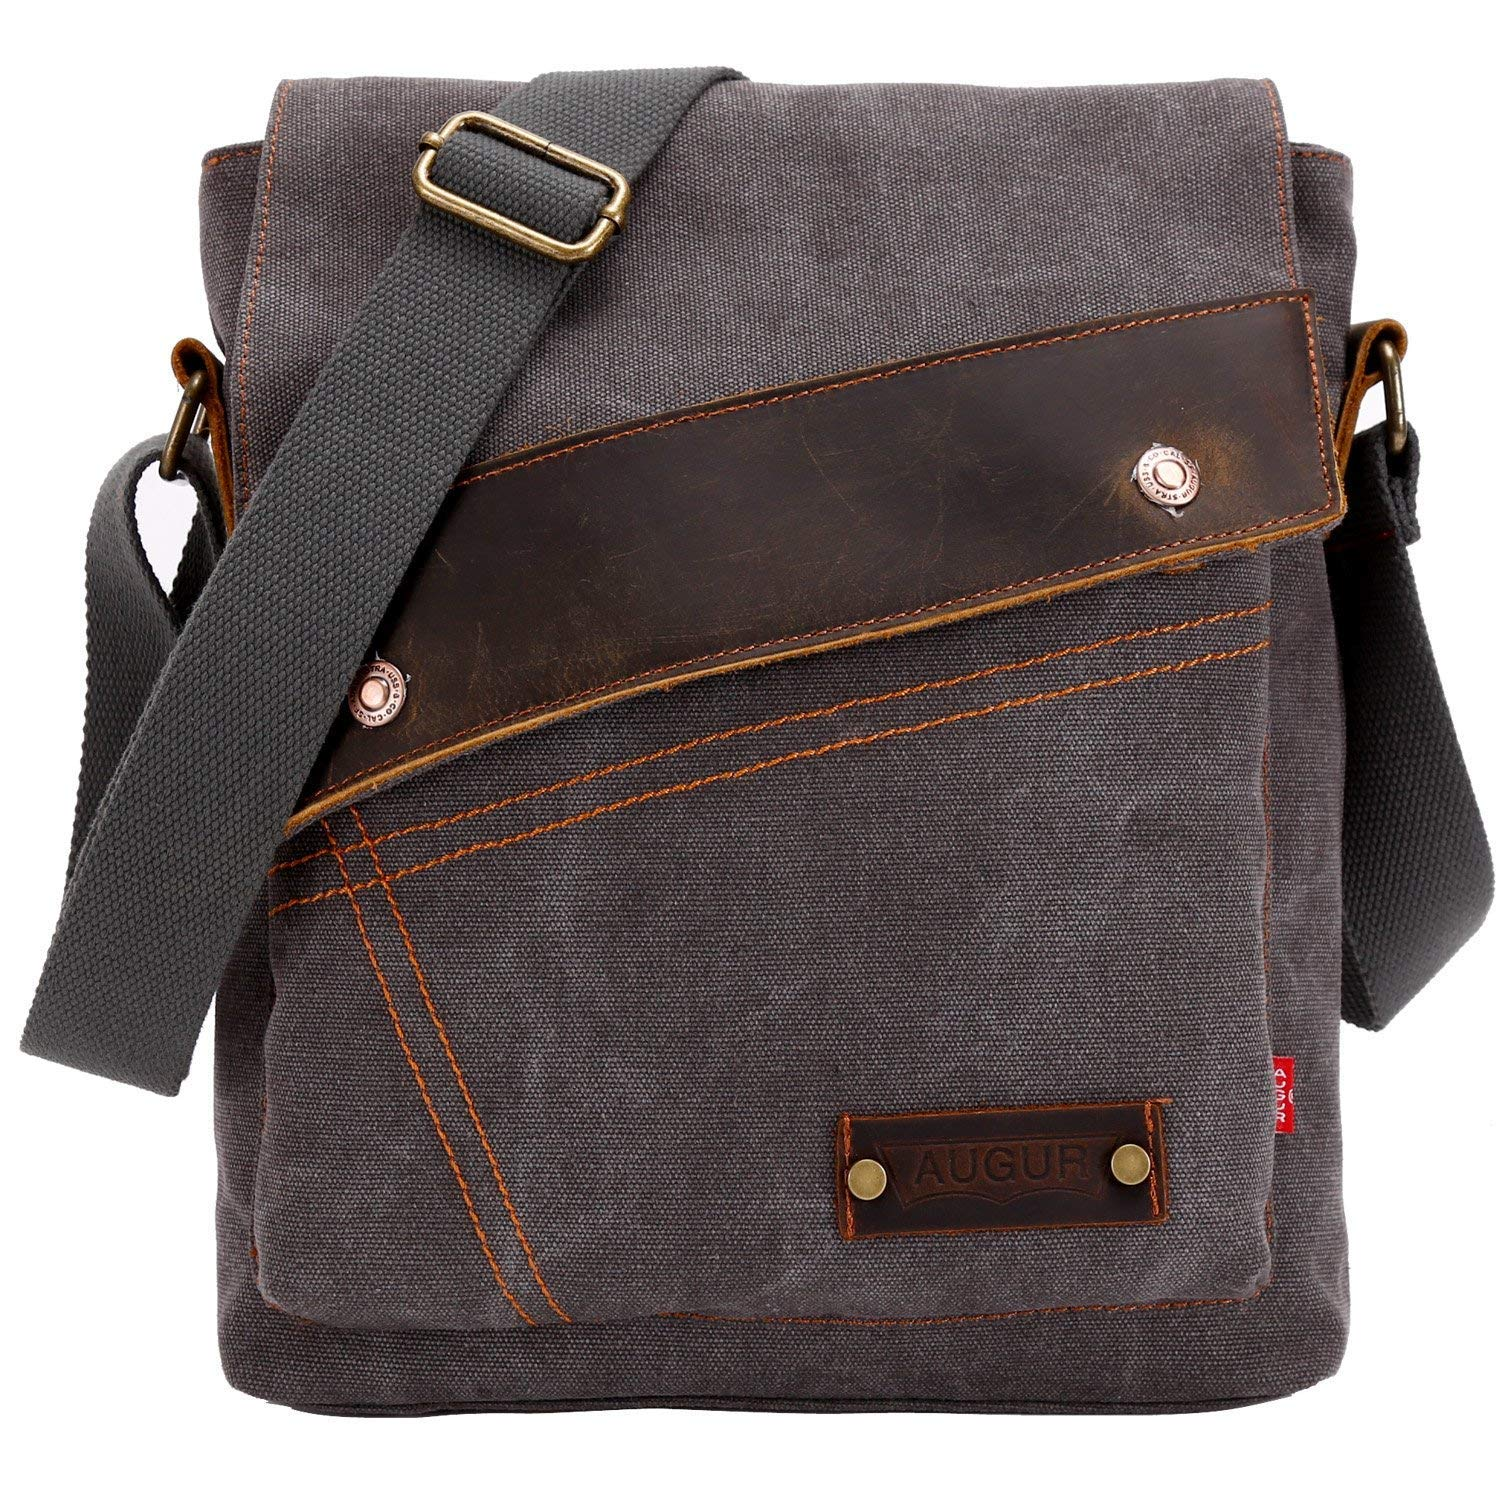 Sechunk Canvas Messenger Bags Shoulder Bags Crossbody Bags Purse Daypack  for Men Women 32358f441dc